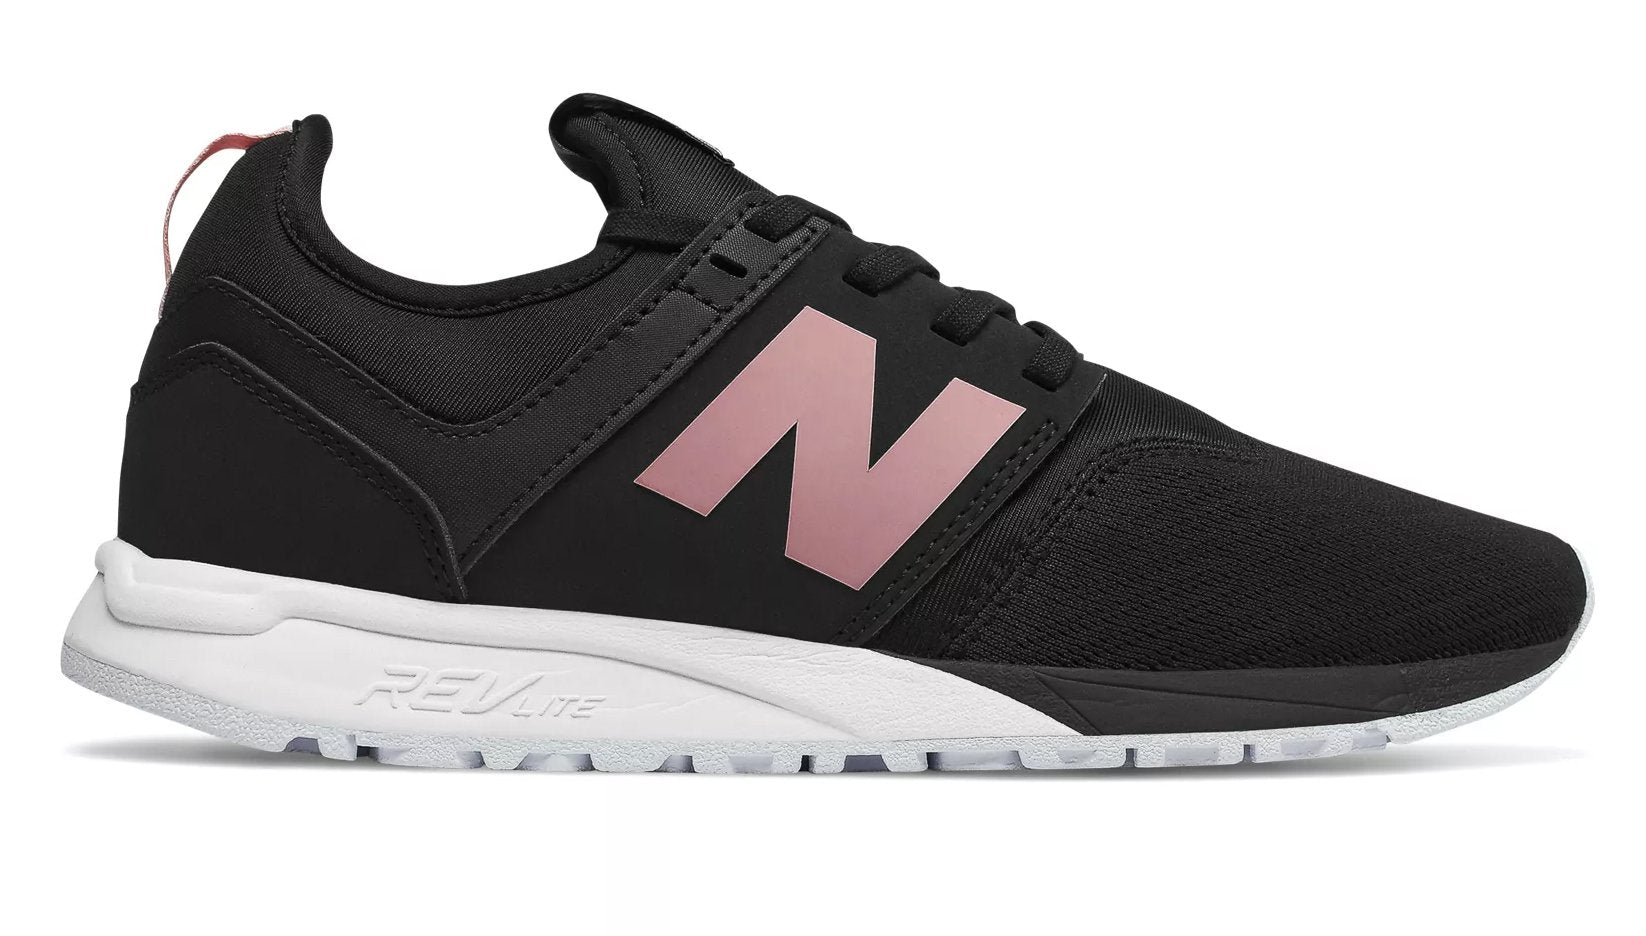 NEW BALANCE Women's Sporty Chic Shoe in Canada